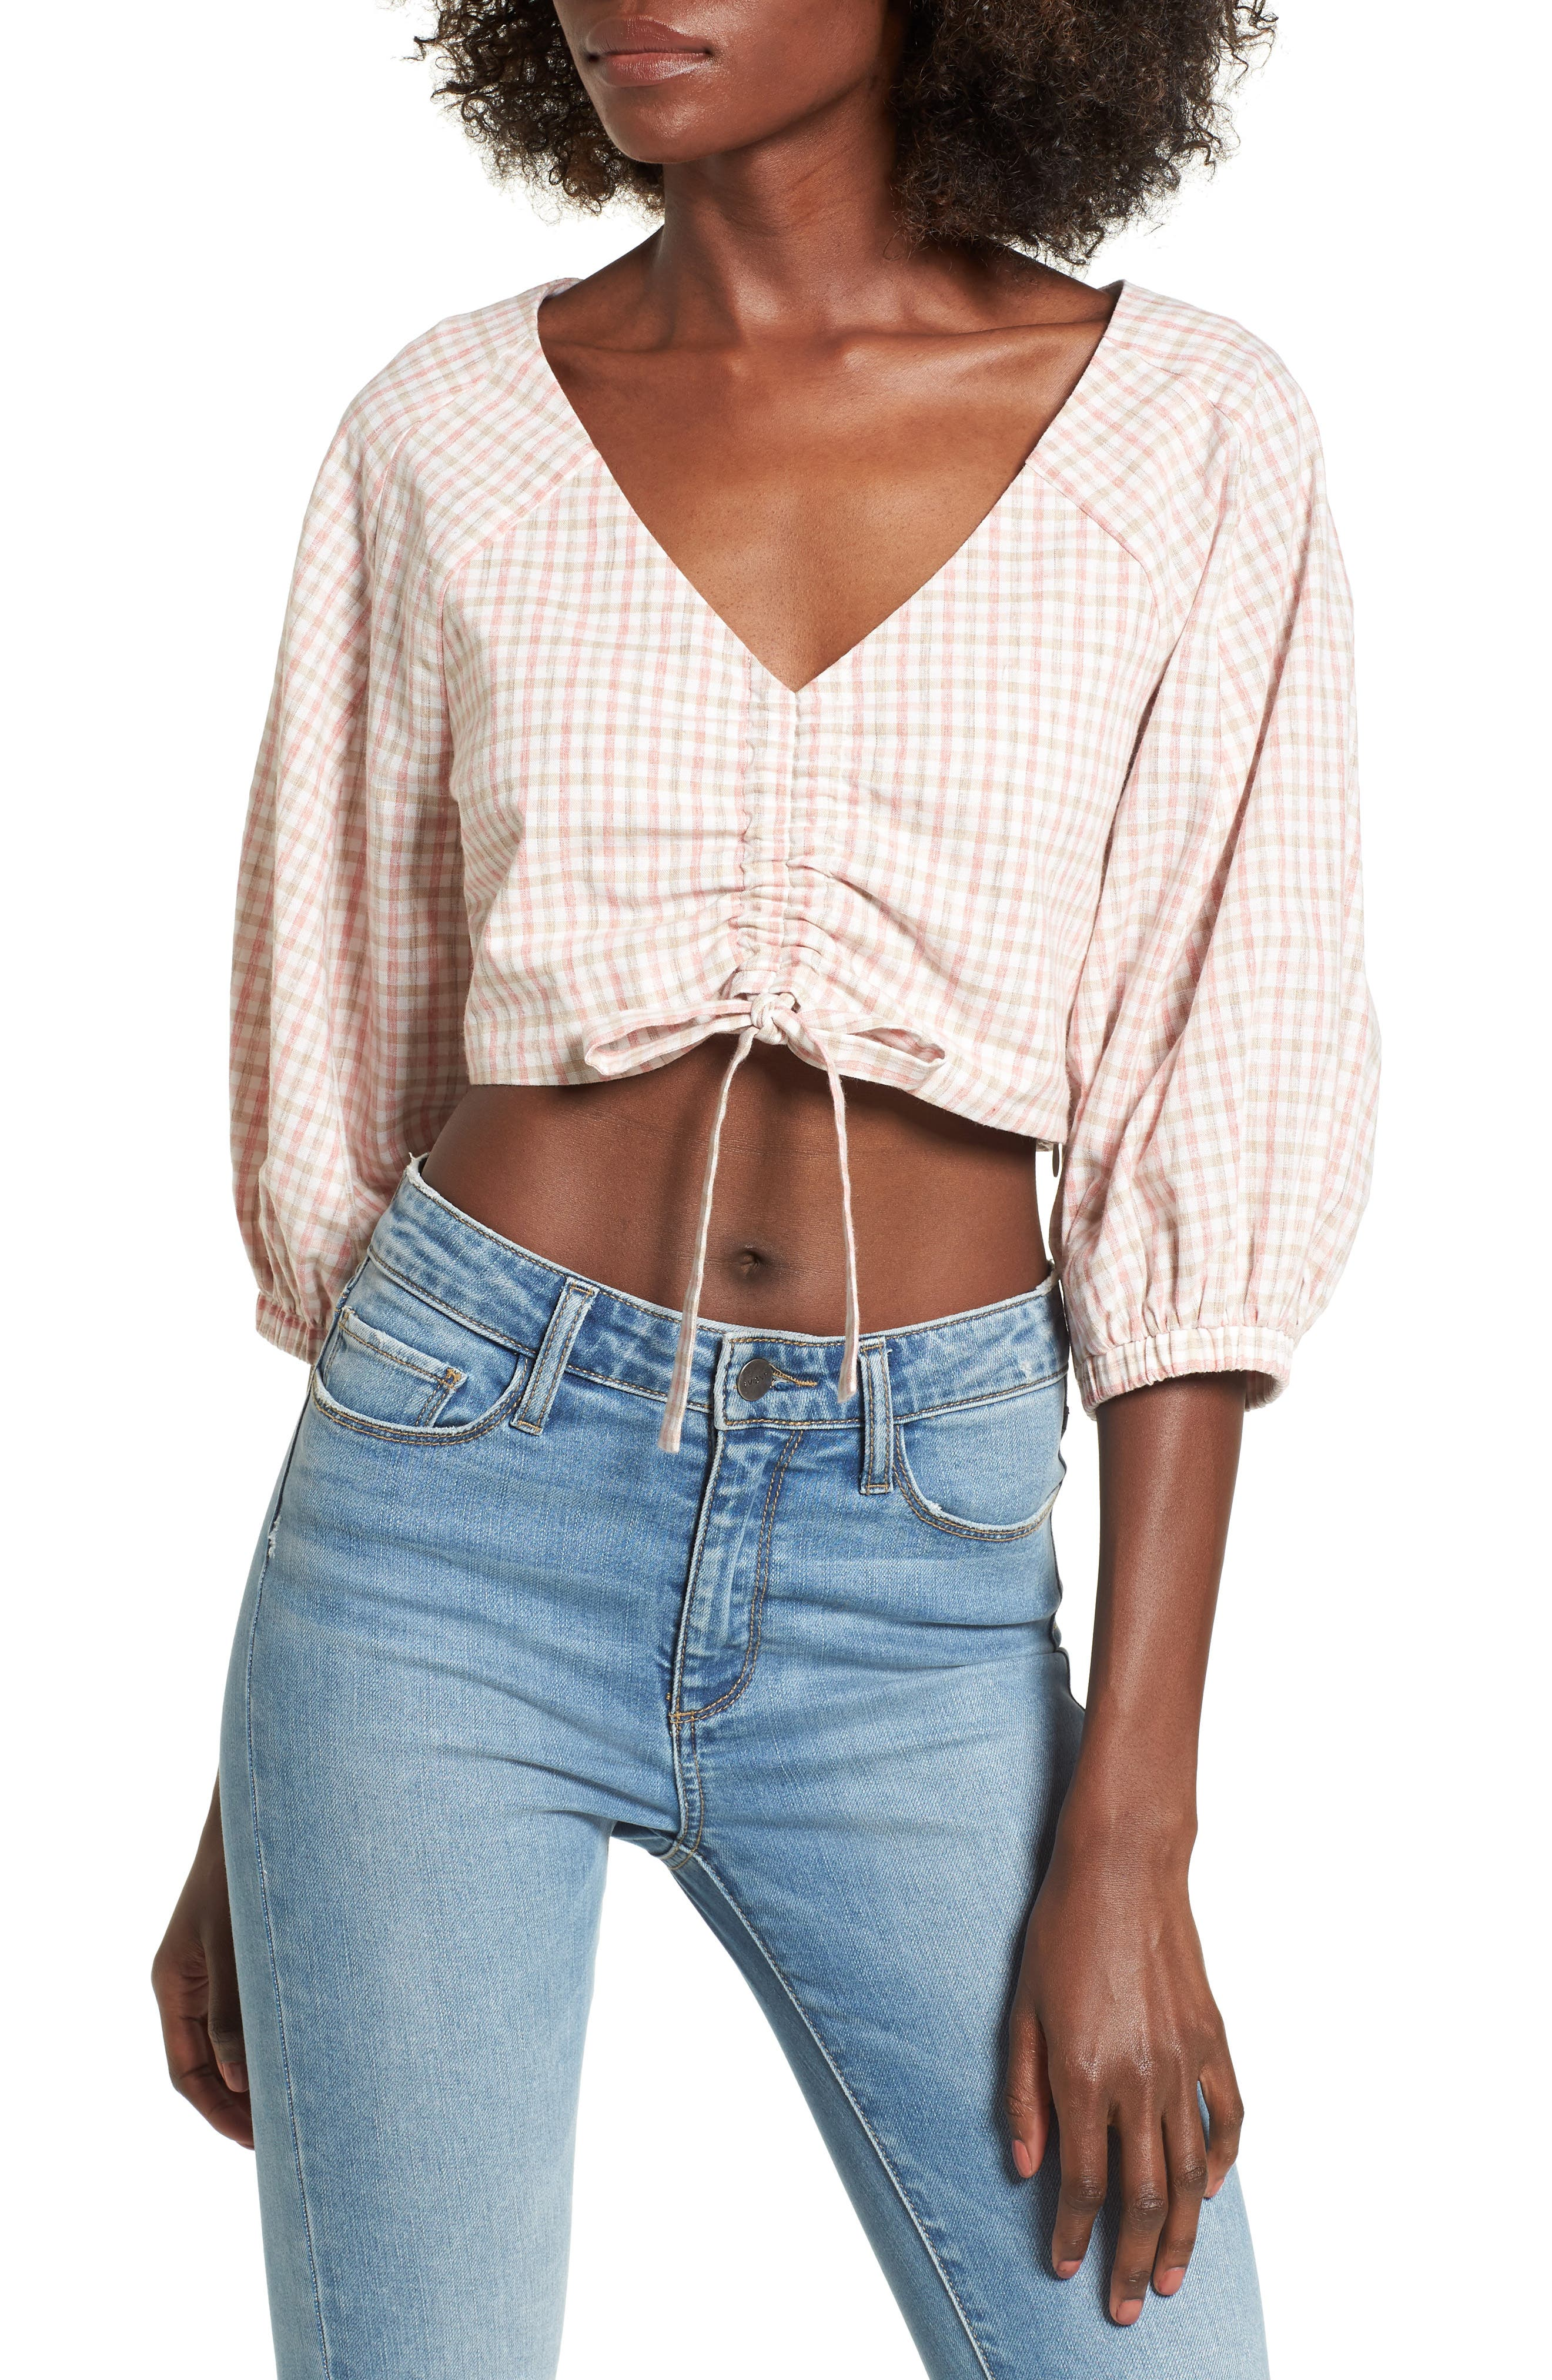 Chriselle x J.O.A. Ruched Front Crop Top,                         Main,                         color, Patina Gingham